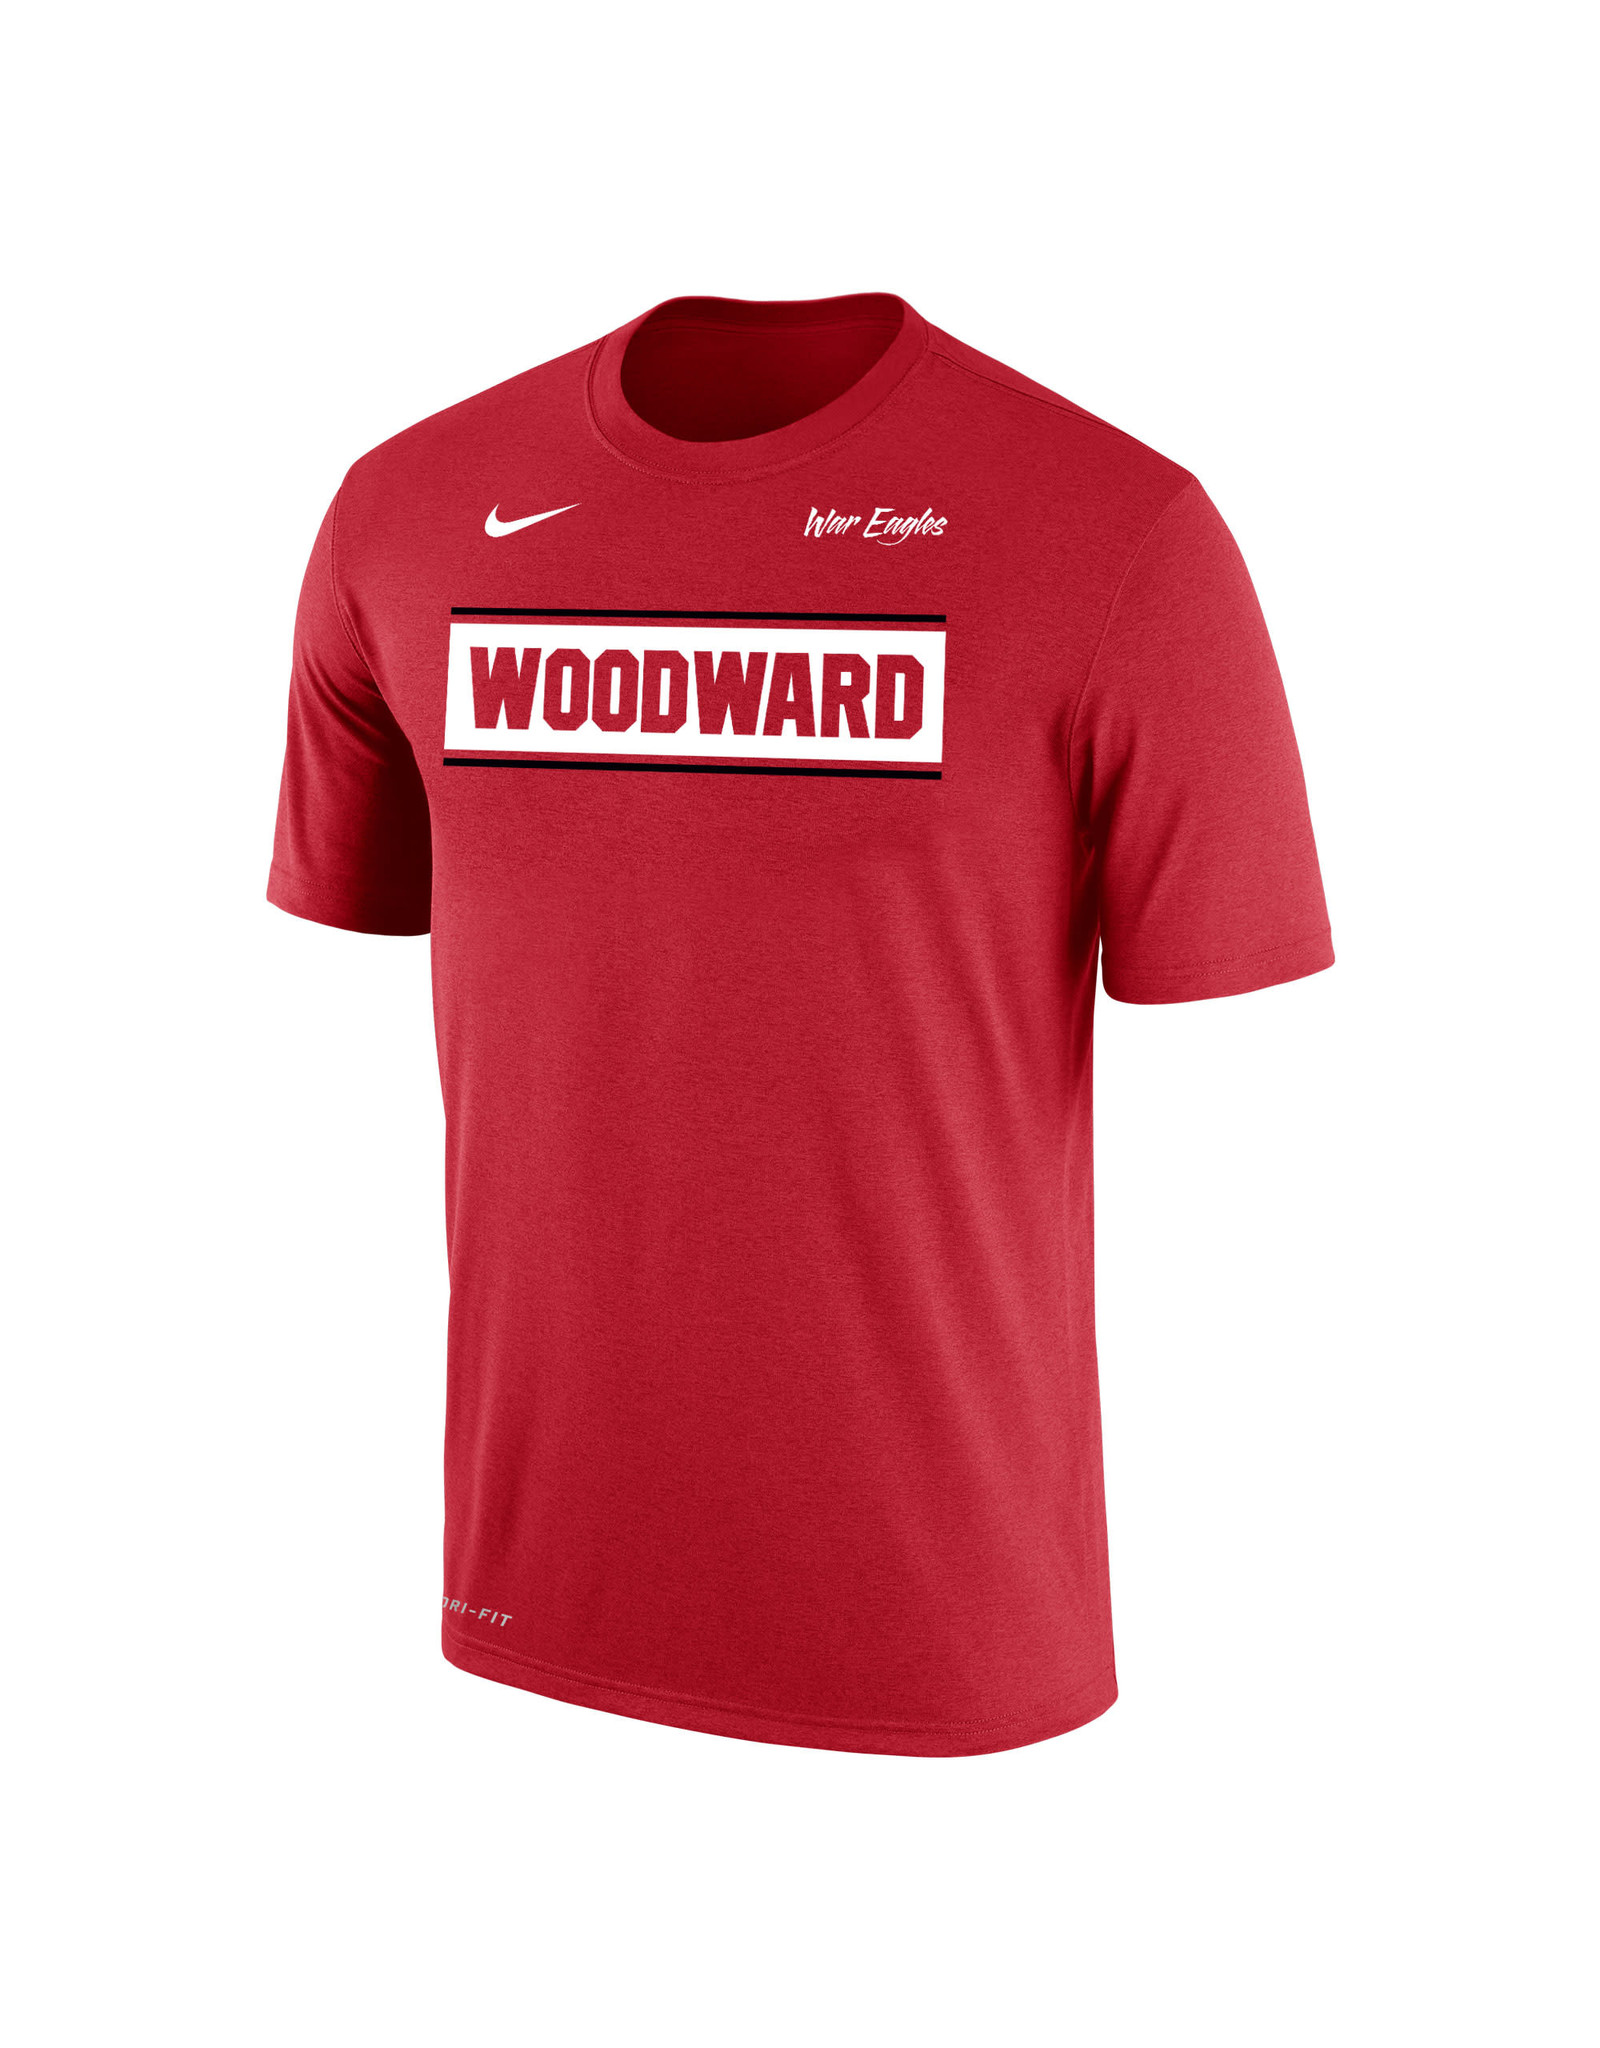 NIKE NIKE Dri-FIT Cotton SS Tee in Red